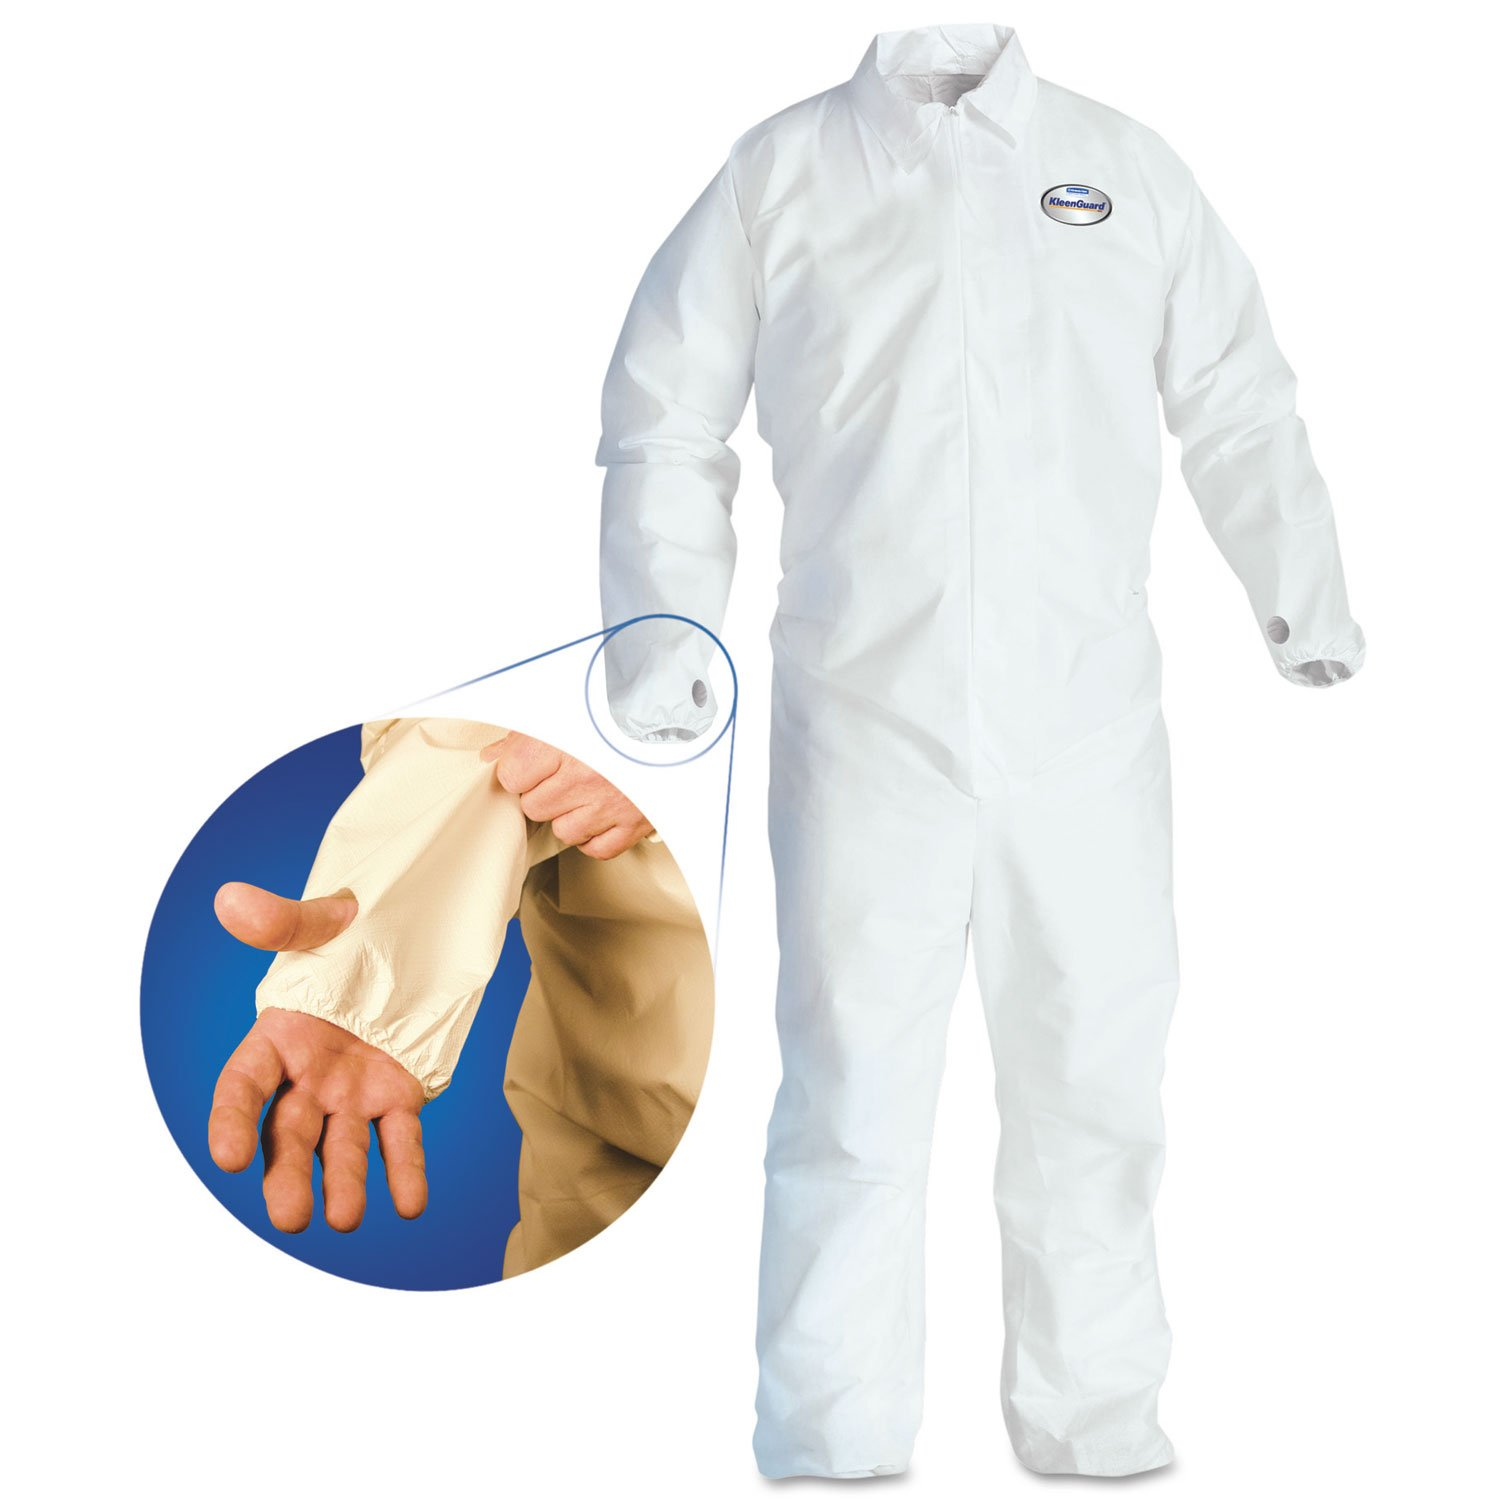 KleenGuard 42526 A40 Breathable Back Coverall with Thumb Hole White/Blue Large 25/Carton